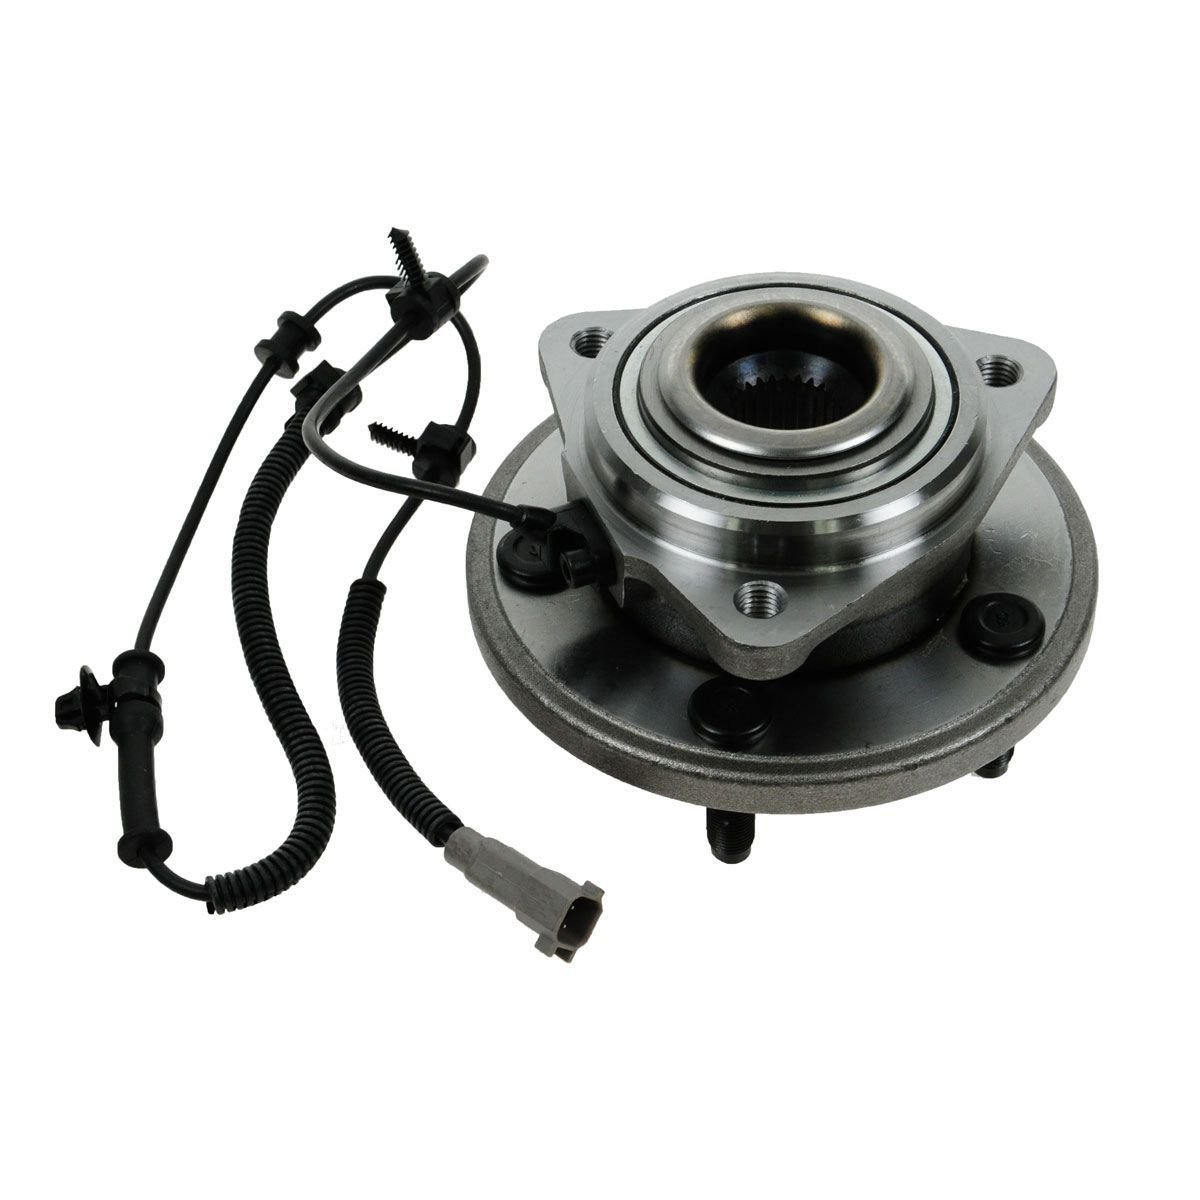 Detroit Axle - New Front Wheel Hub and Bearing Assembly Fits 2006 2007 2008 2009 2010 Jeep Commander and 2005-2010 Grand Cherokee With ABS Wire 513234